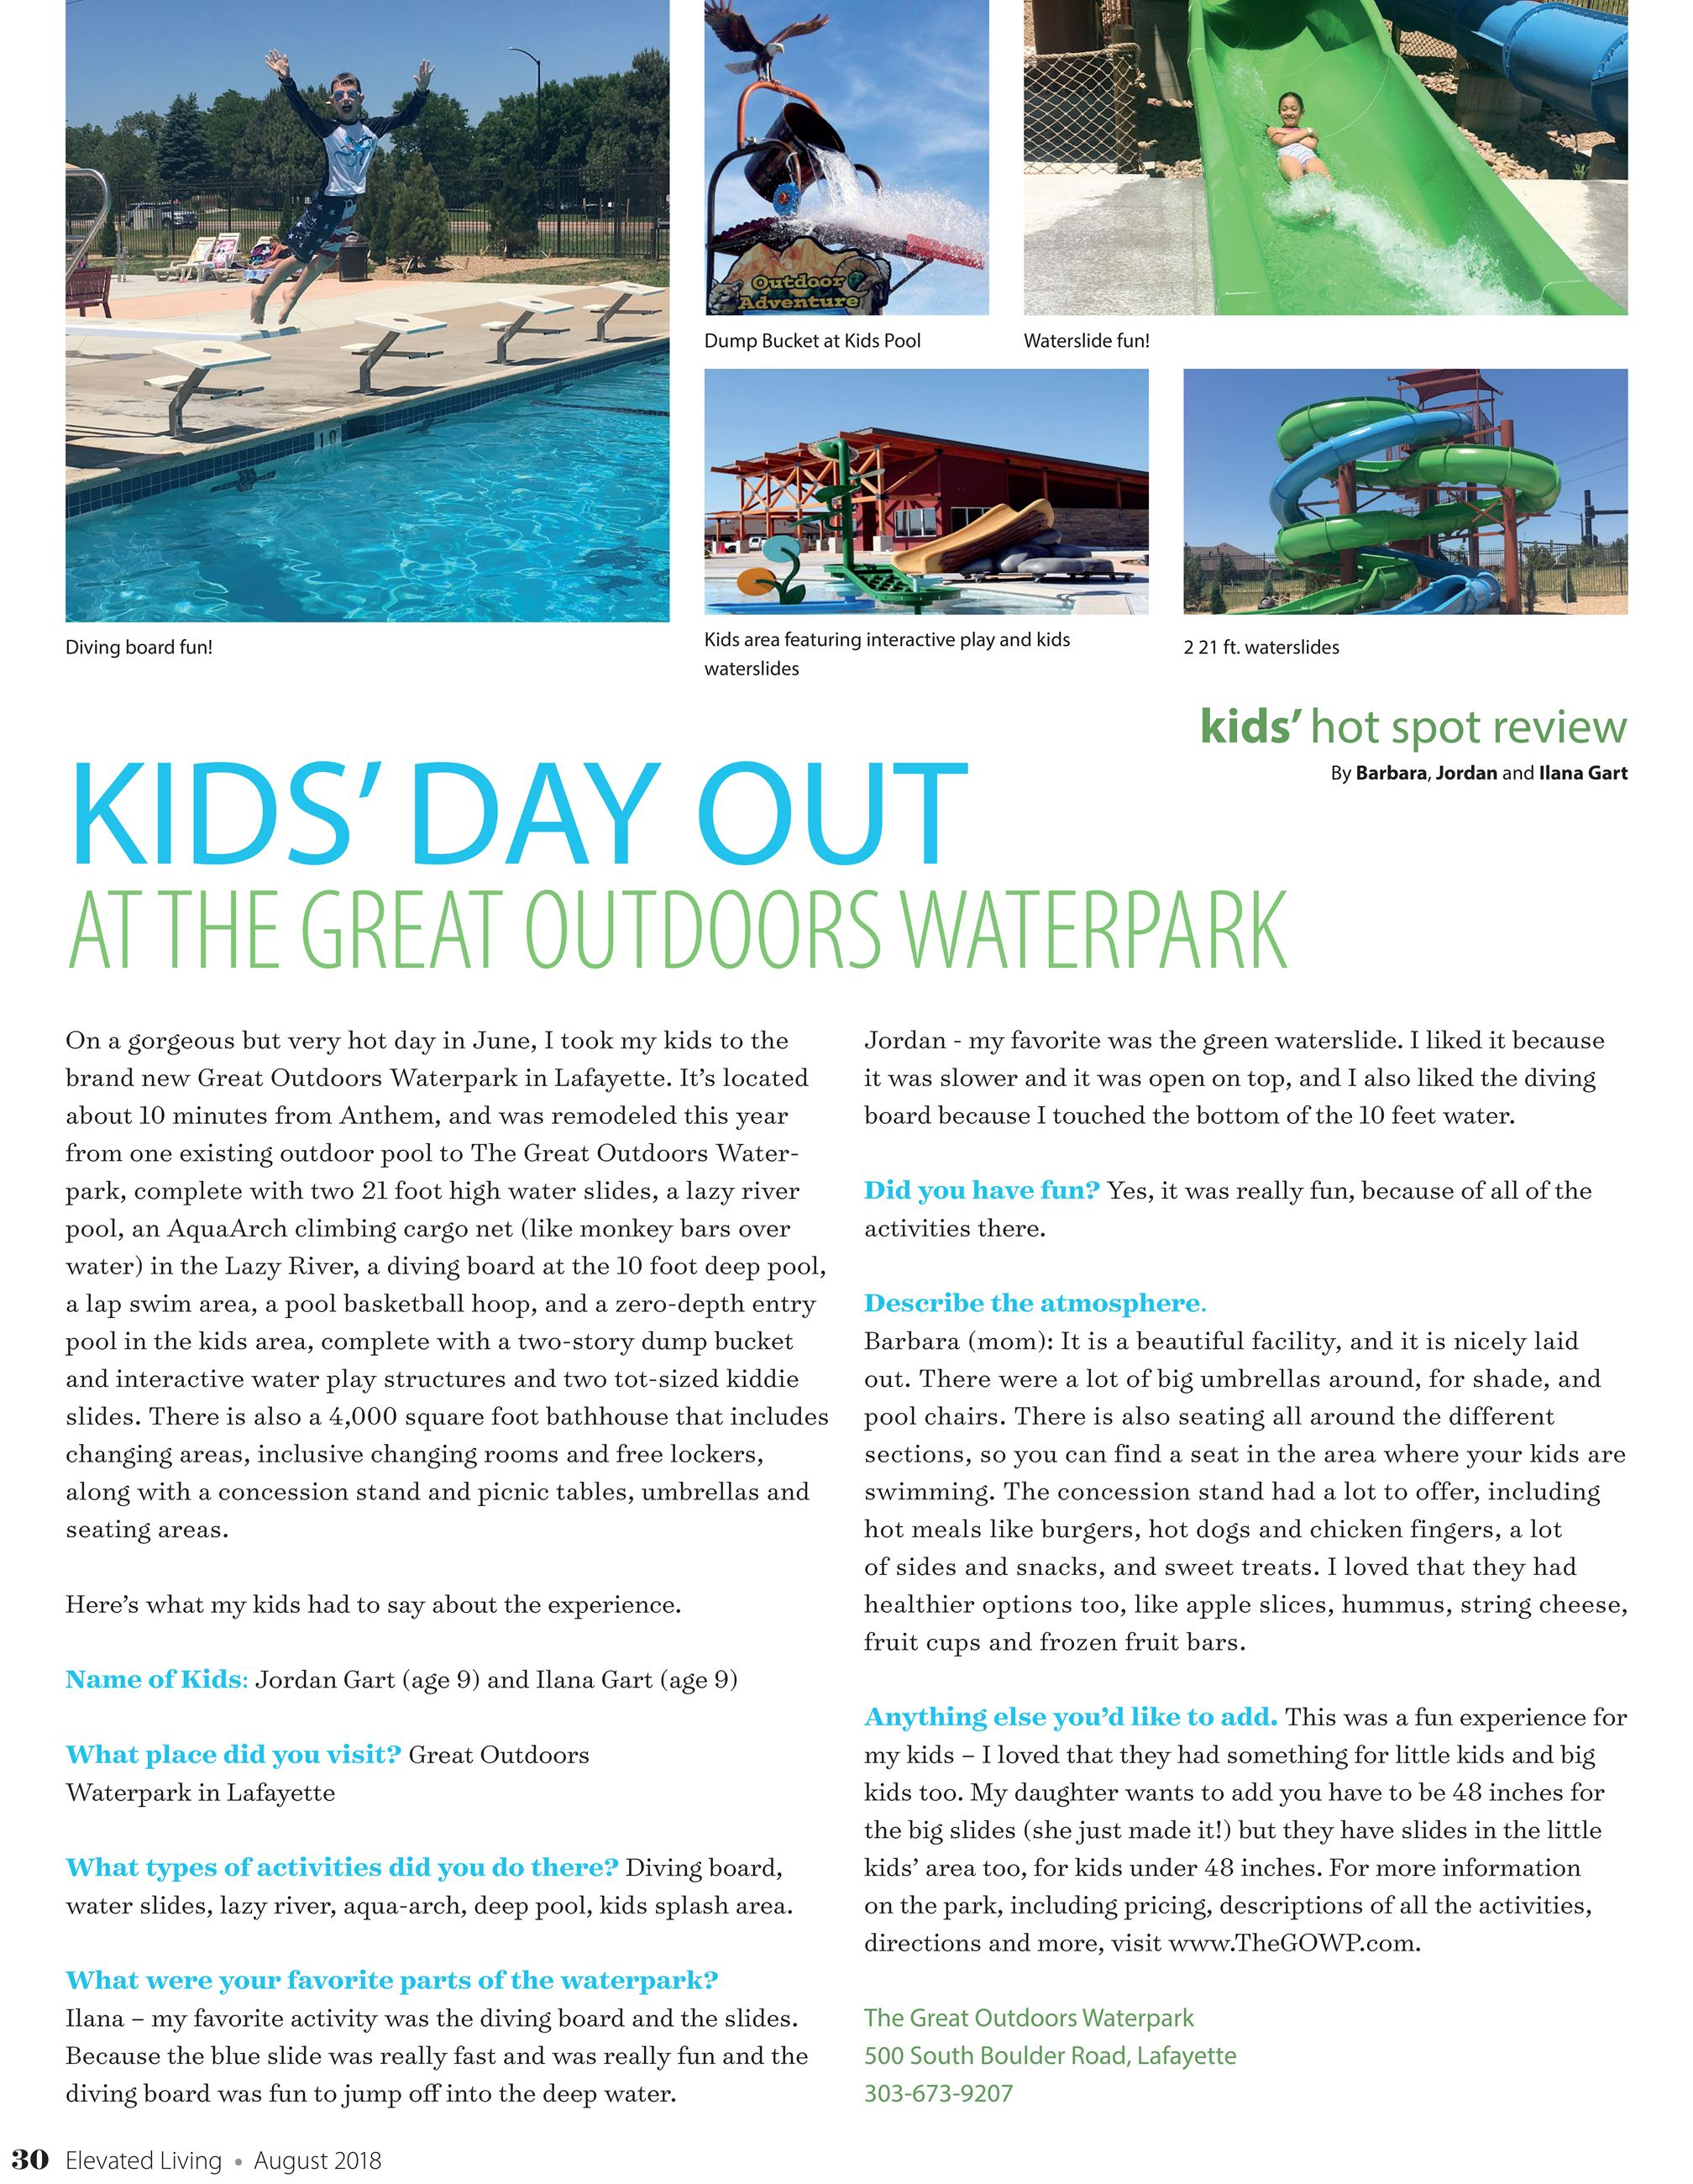 Aug_2018_Elevated_Living Article on the Great Outdoors Waterpark